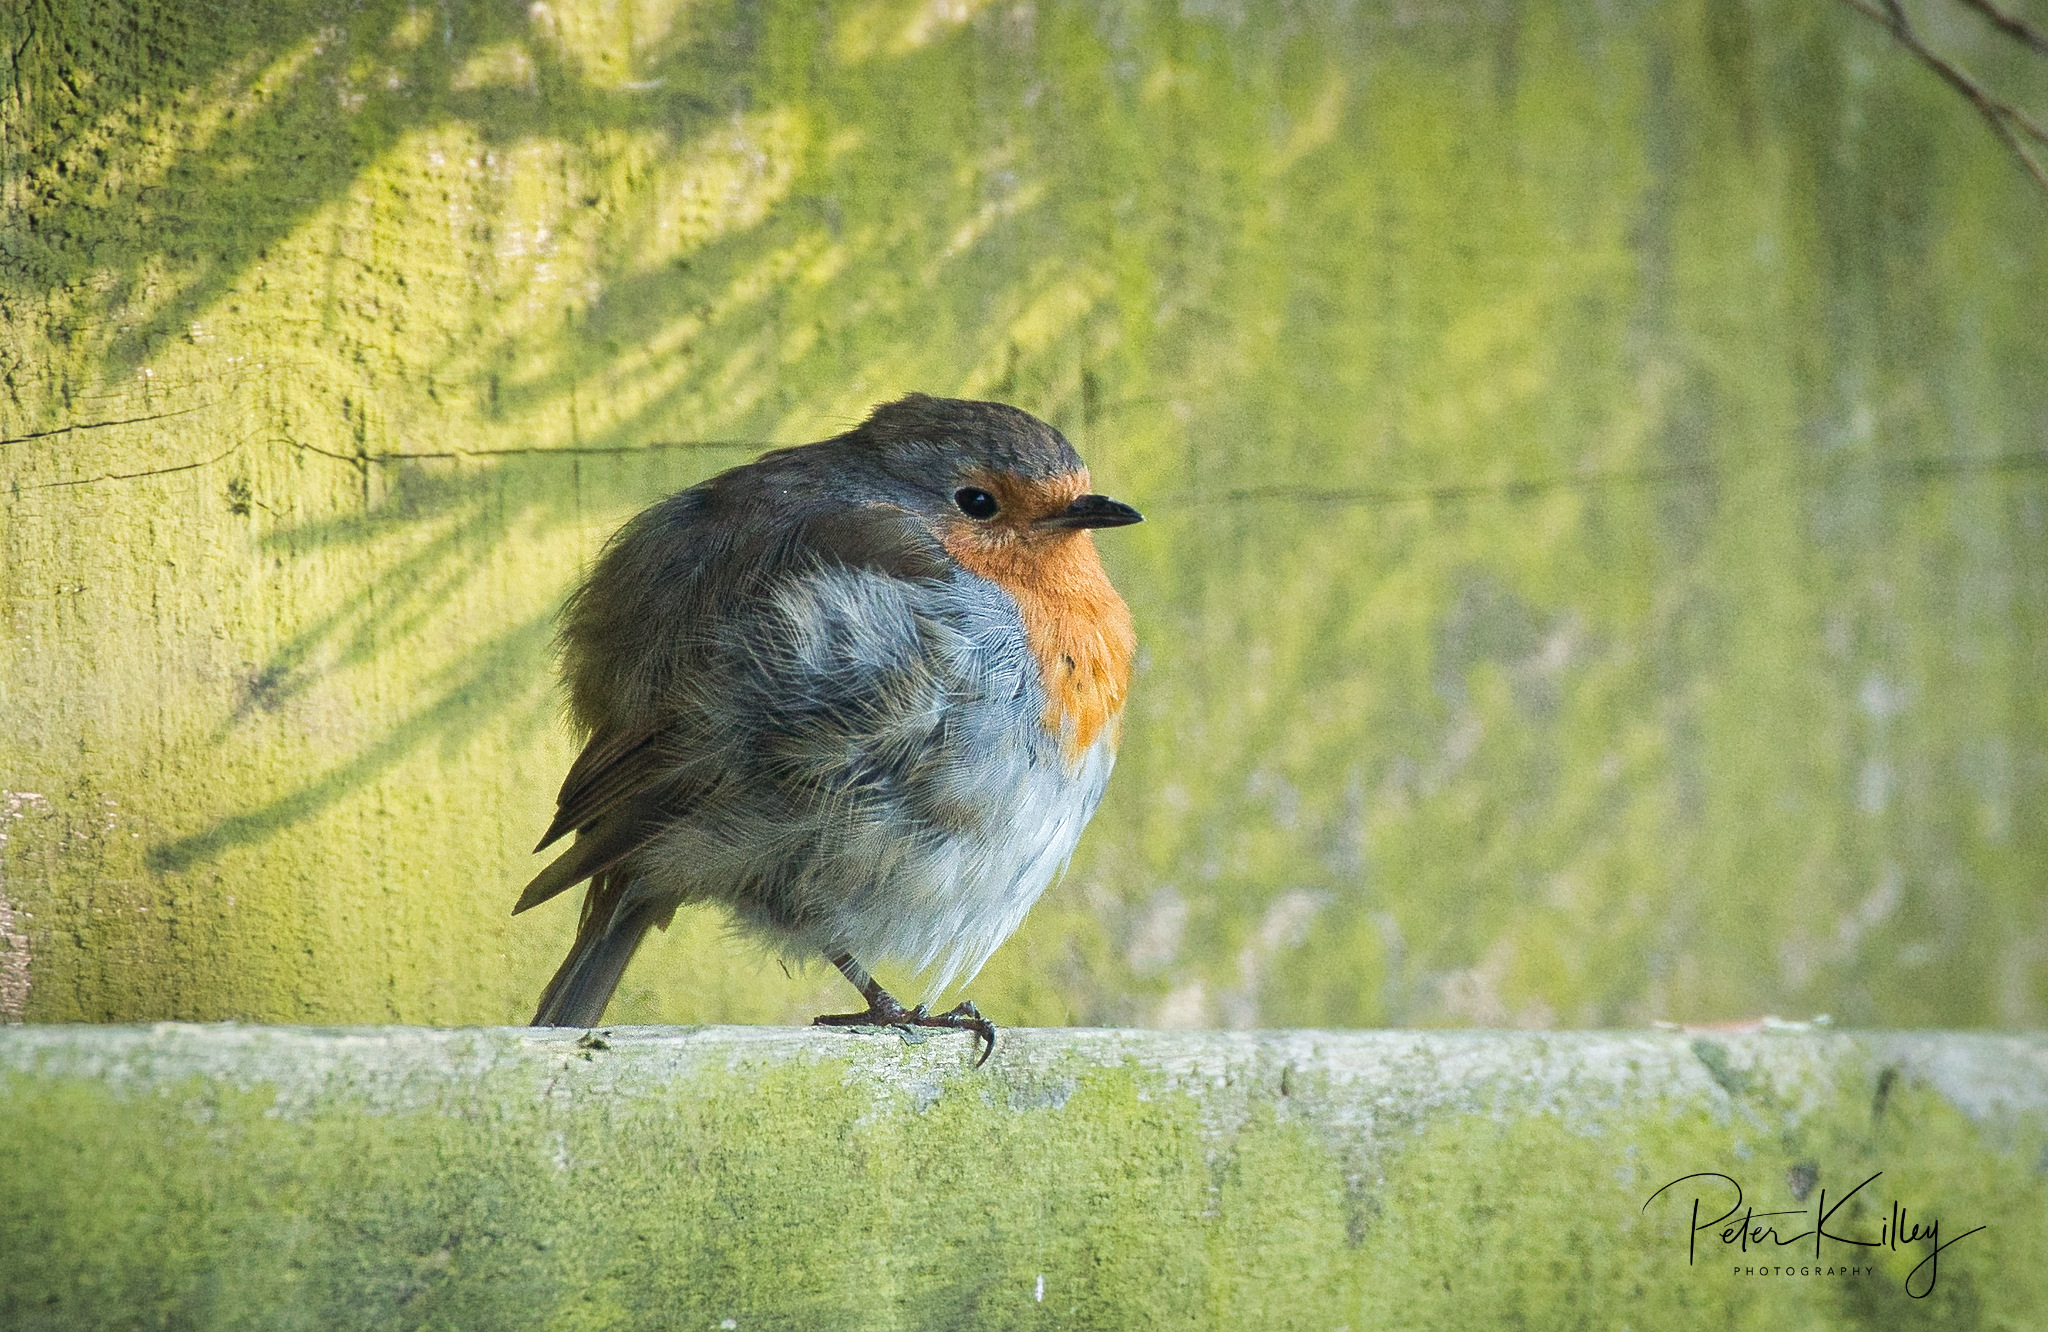 Round Robin - © Peter Killey - www.manxscenes.com